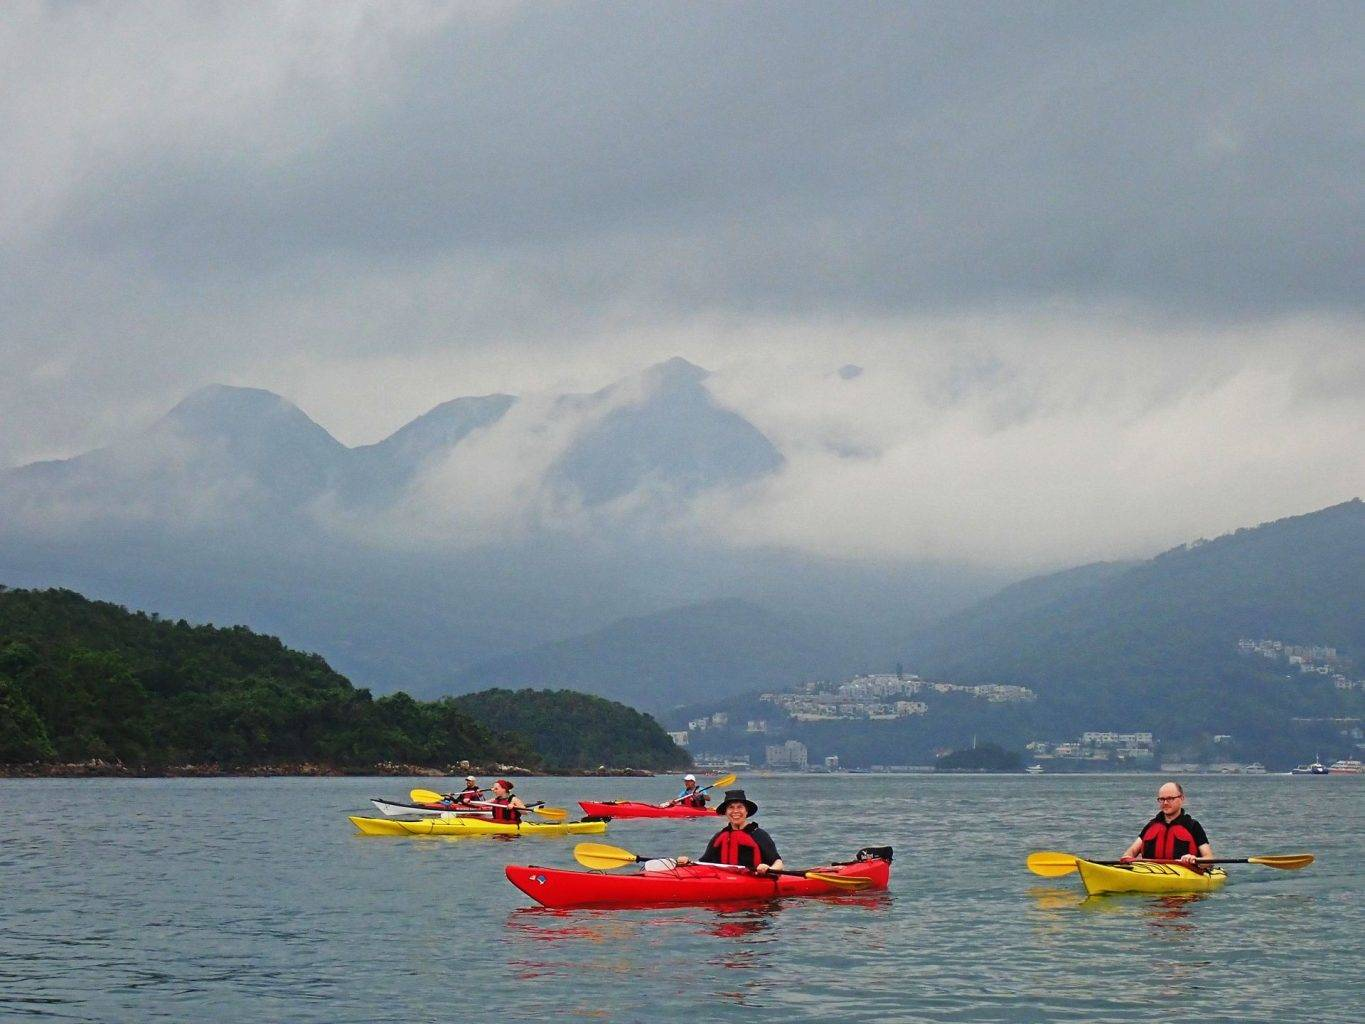 19 Apr 2019 UNESCO Geopark 1 day sea kayak trip Hong Kong_05